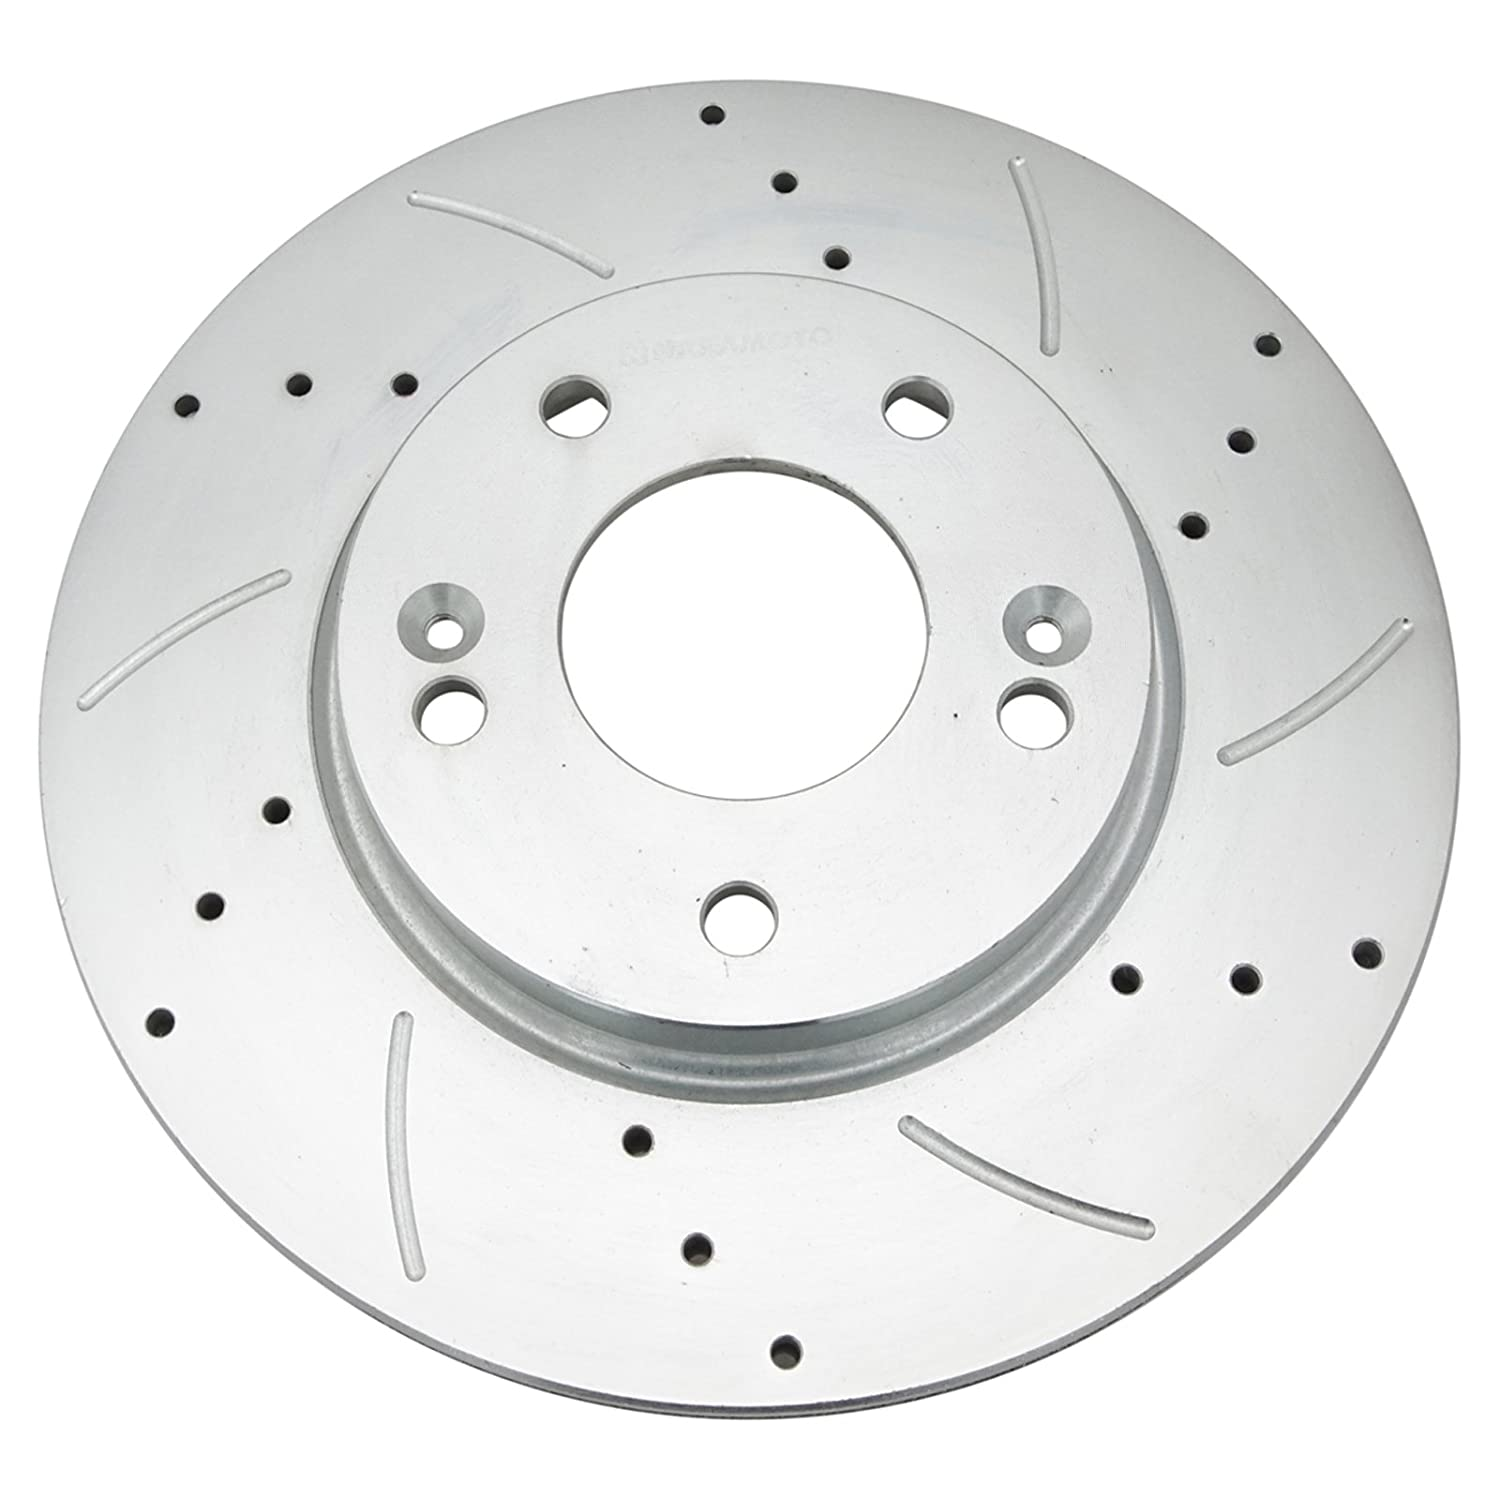 Performance Brake Rotor Drilled /& Slotted Coated Front Pair for Hyundai